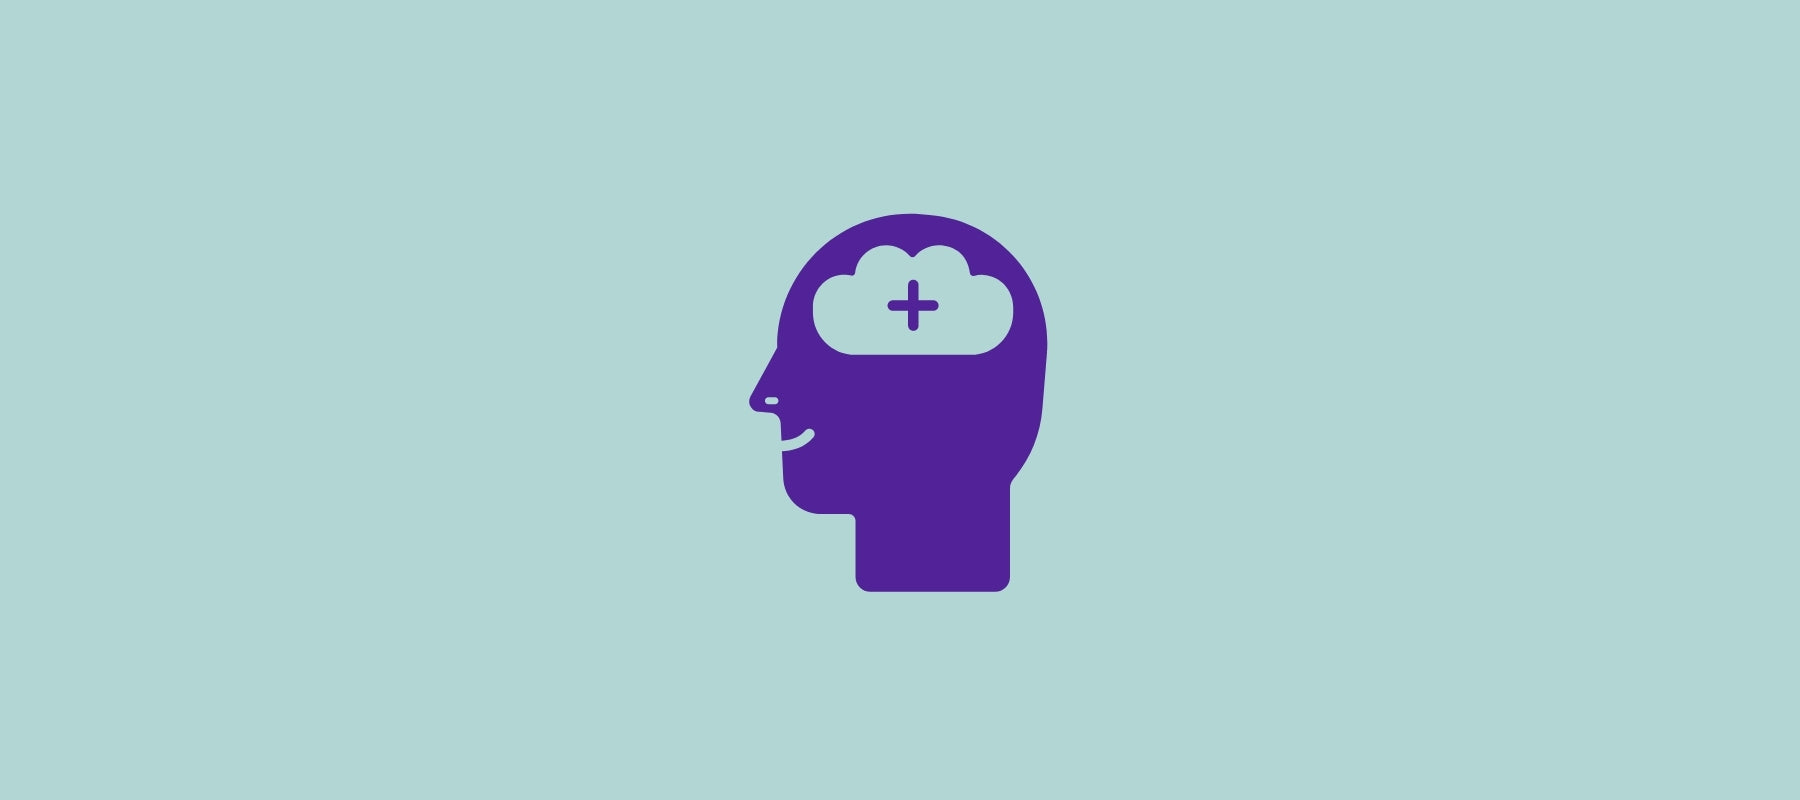 Illustration of the + sign on the brain of a human head defining a solution to limit the symptoms of narcolepsy